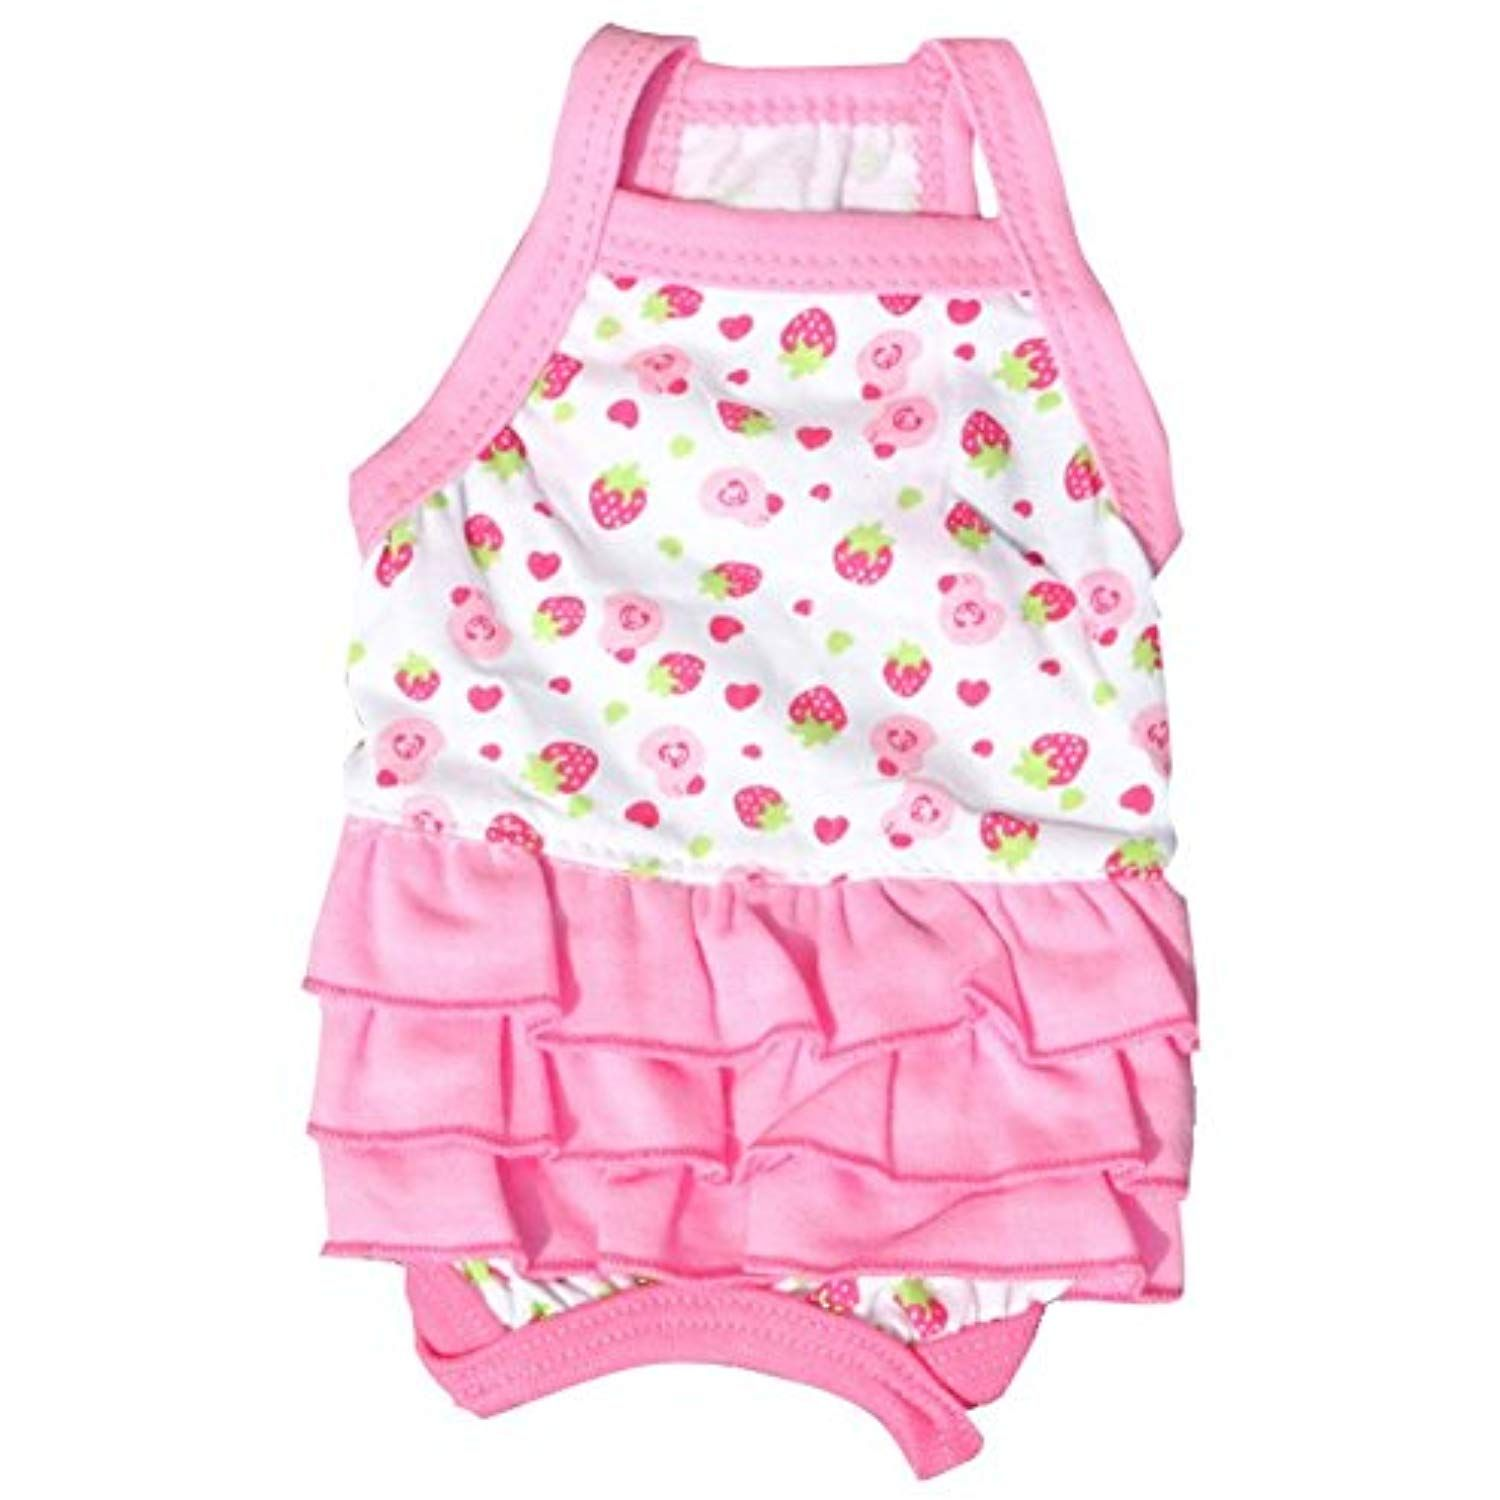 Stock Show Pet Dog Cute Pink Dresses with Strawberry